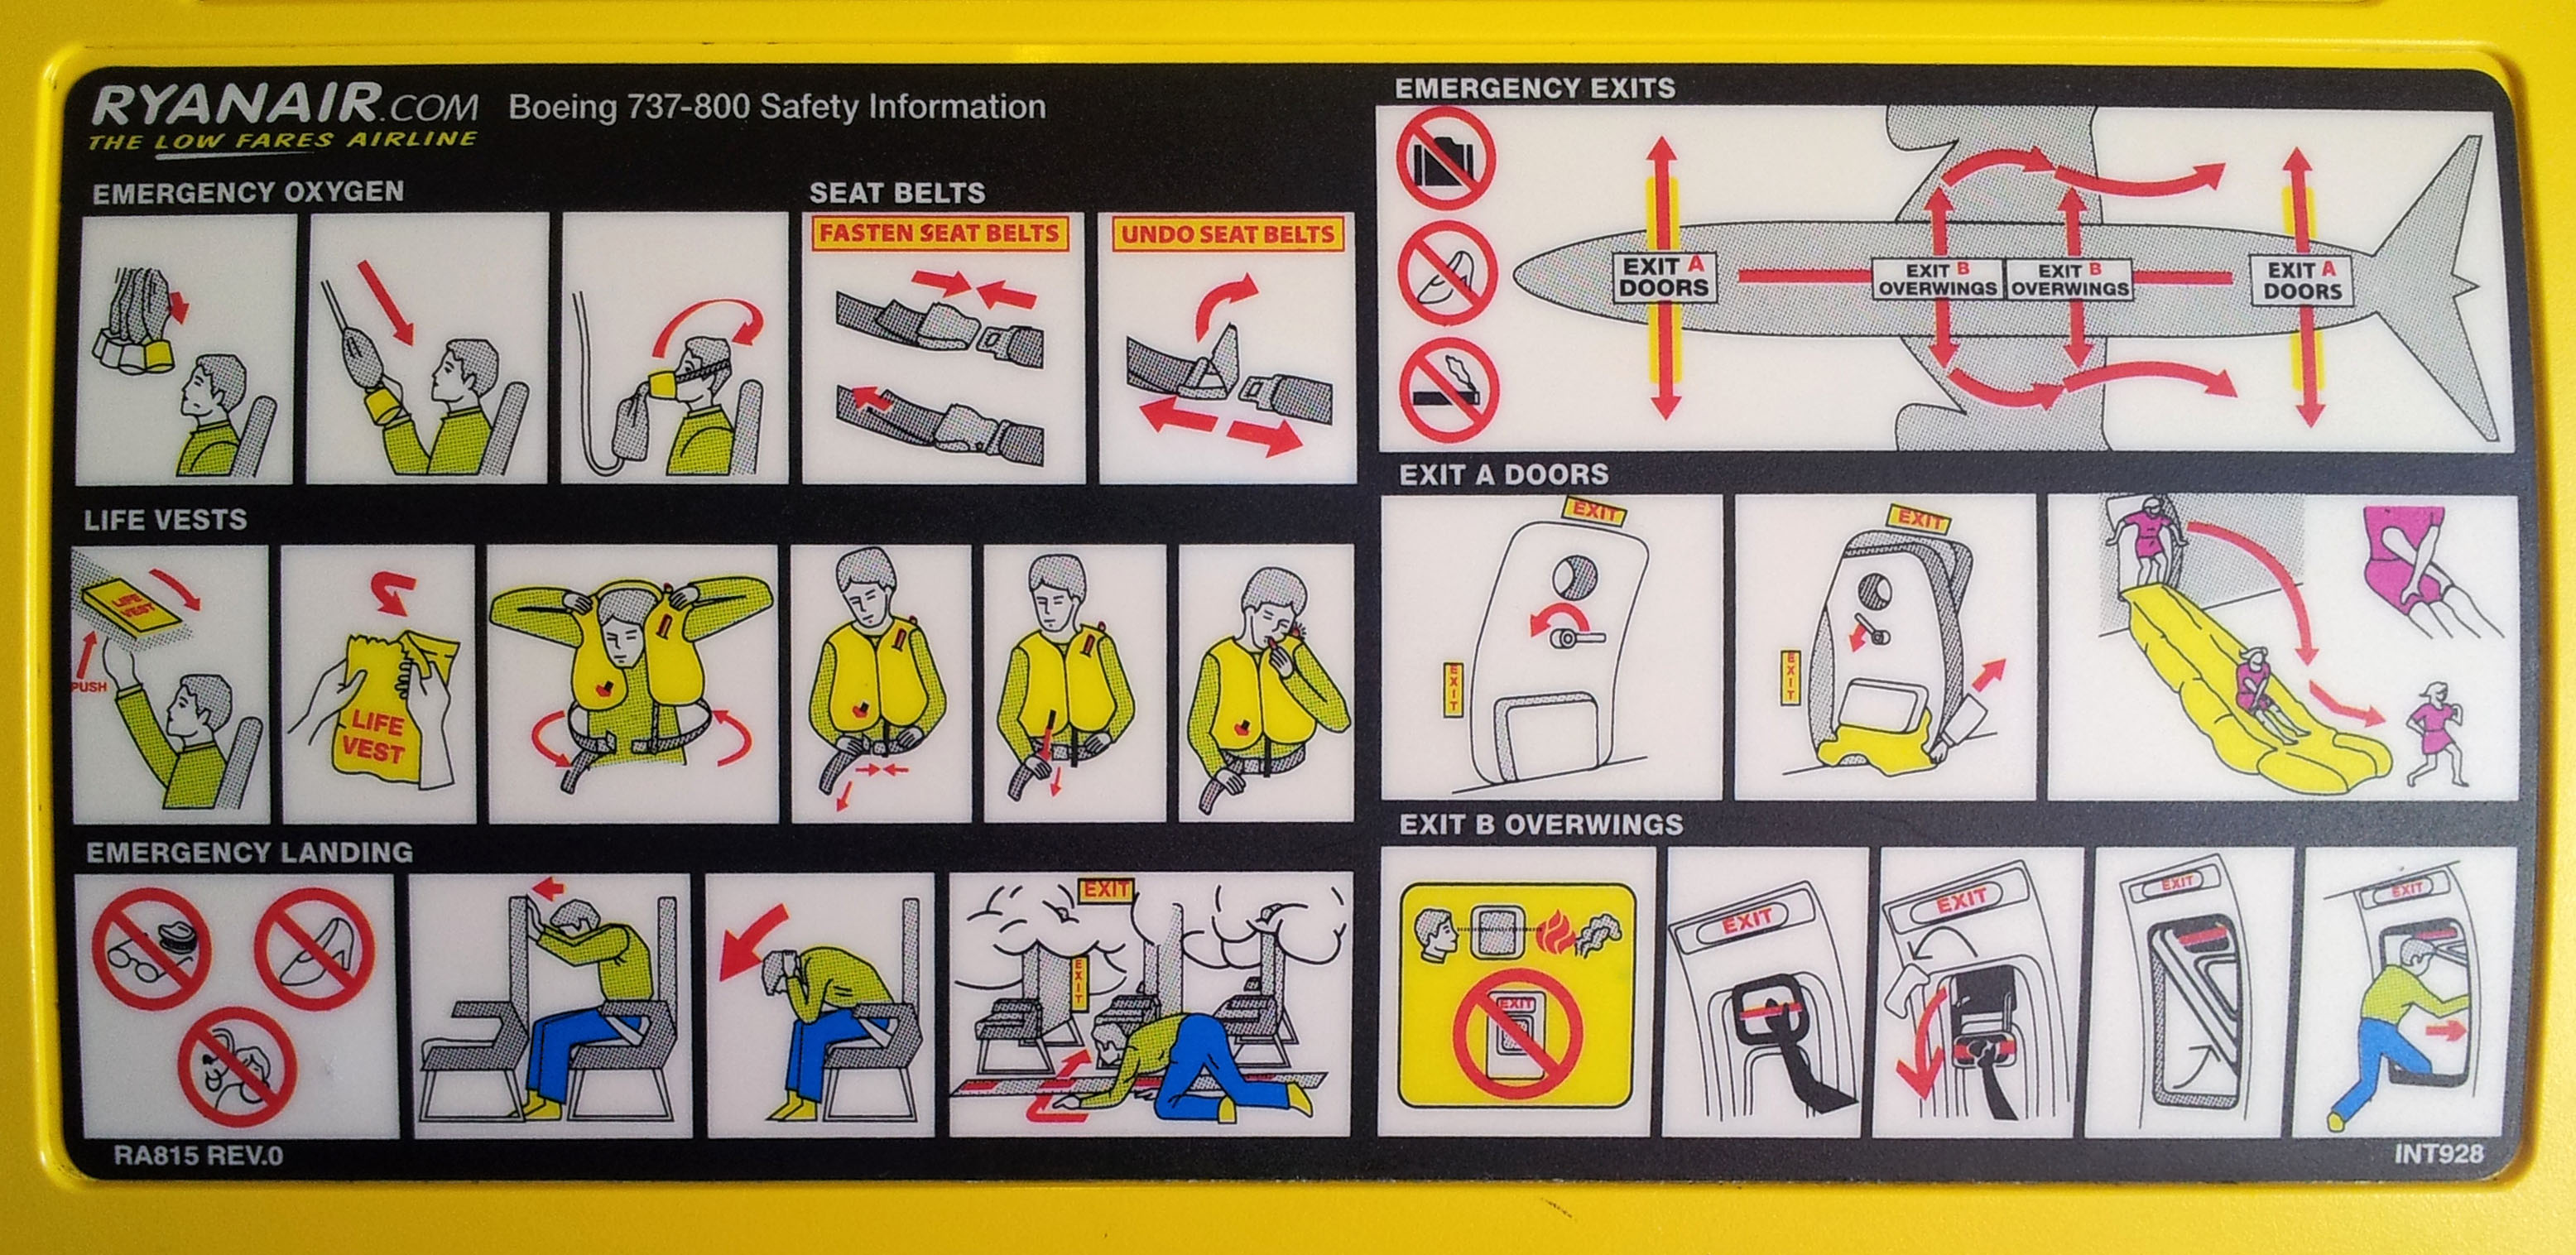 With little luggage for the journey, the Ryanair passenger has time to contemplate the many, many ways the have to die.